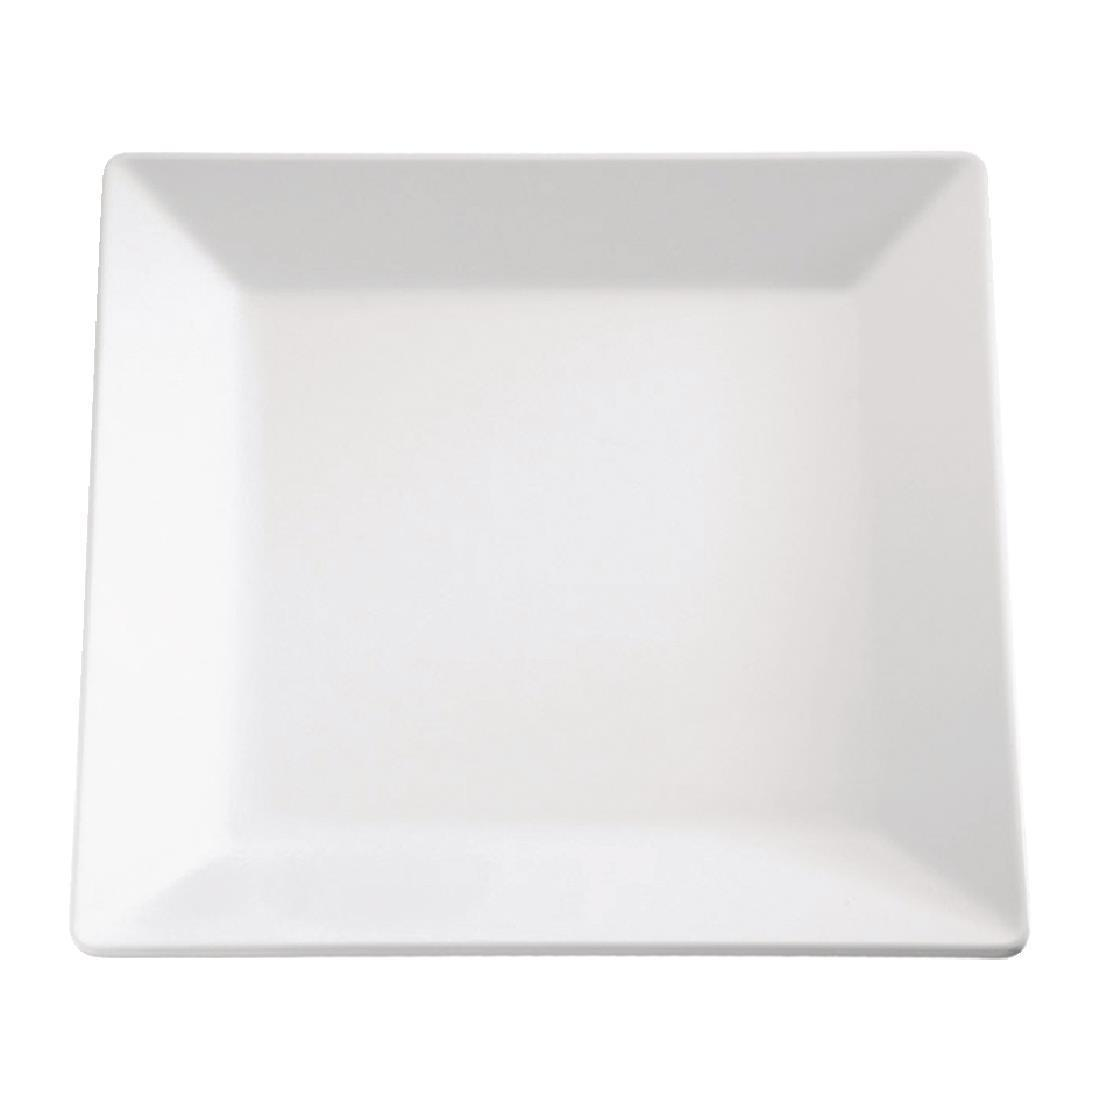 APS Pure Melamine Square Tray 14in - Each - GF173